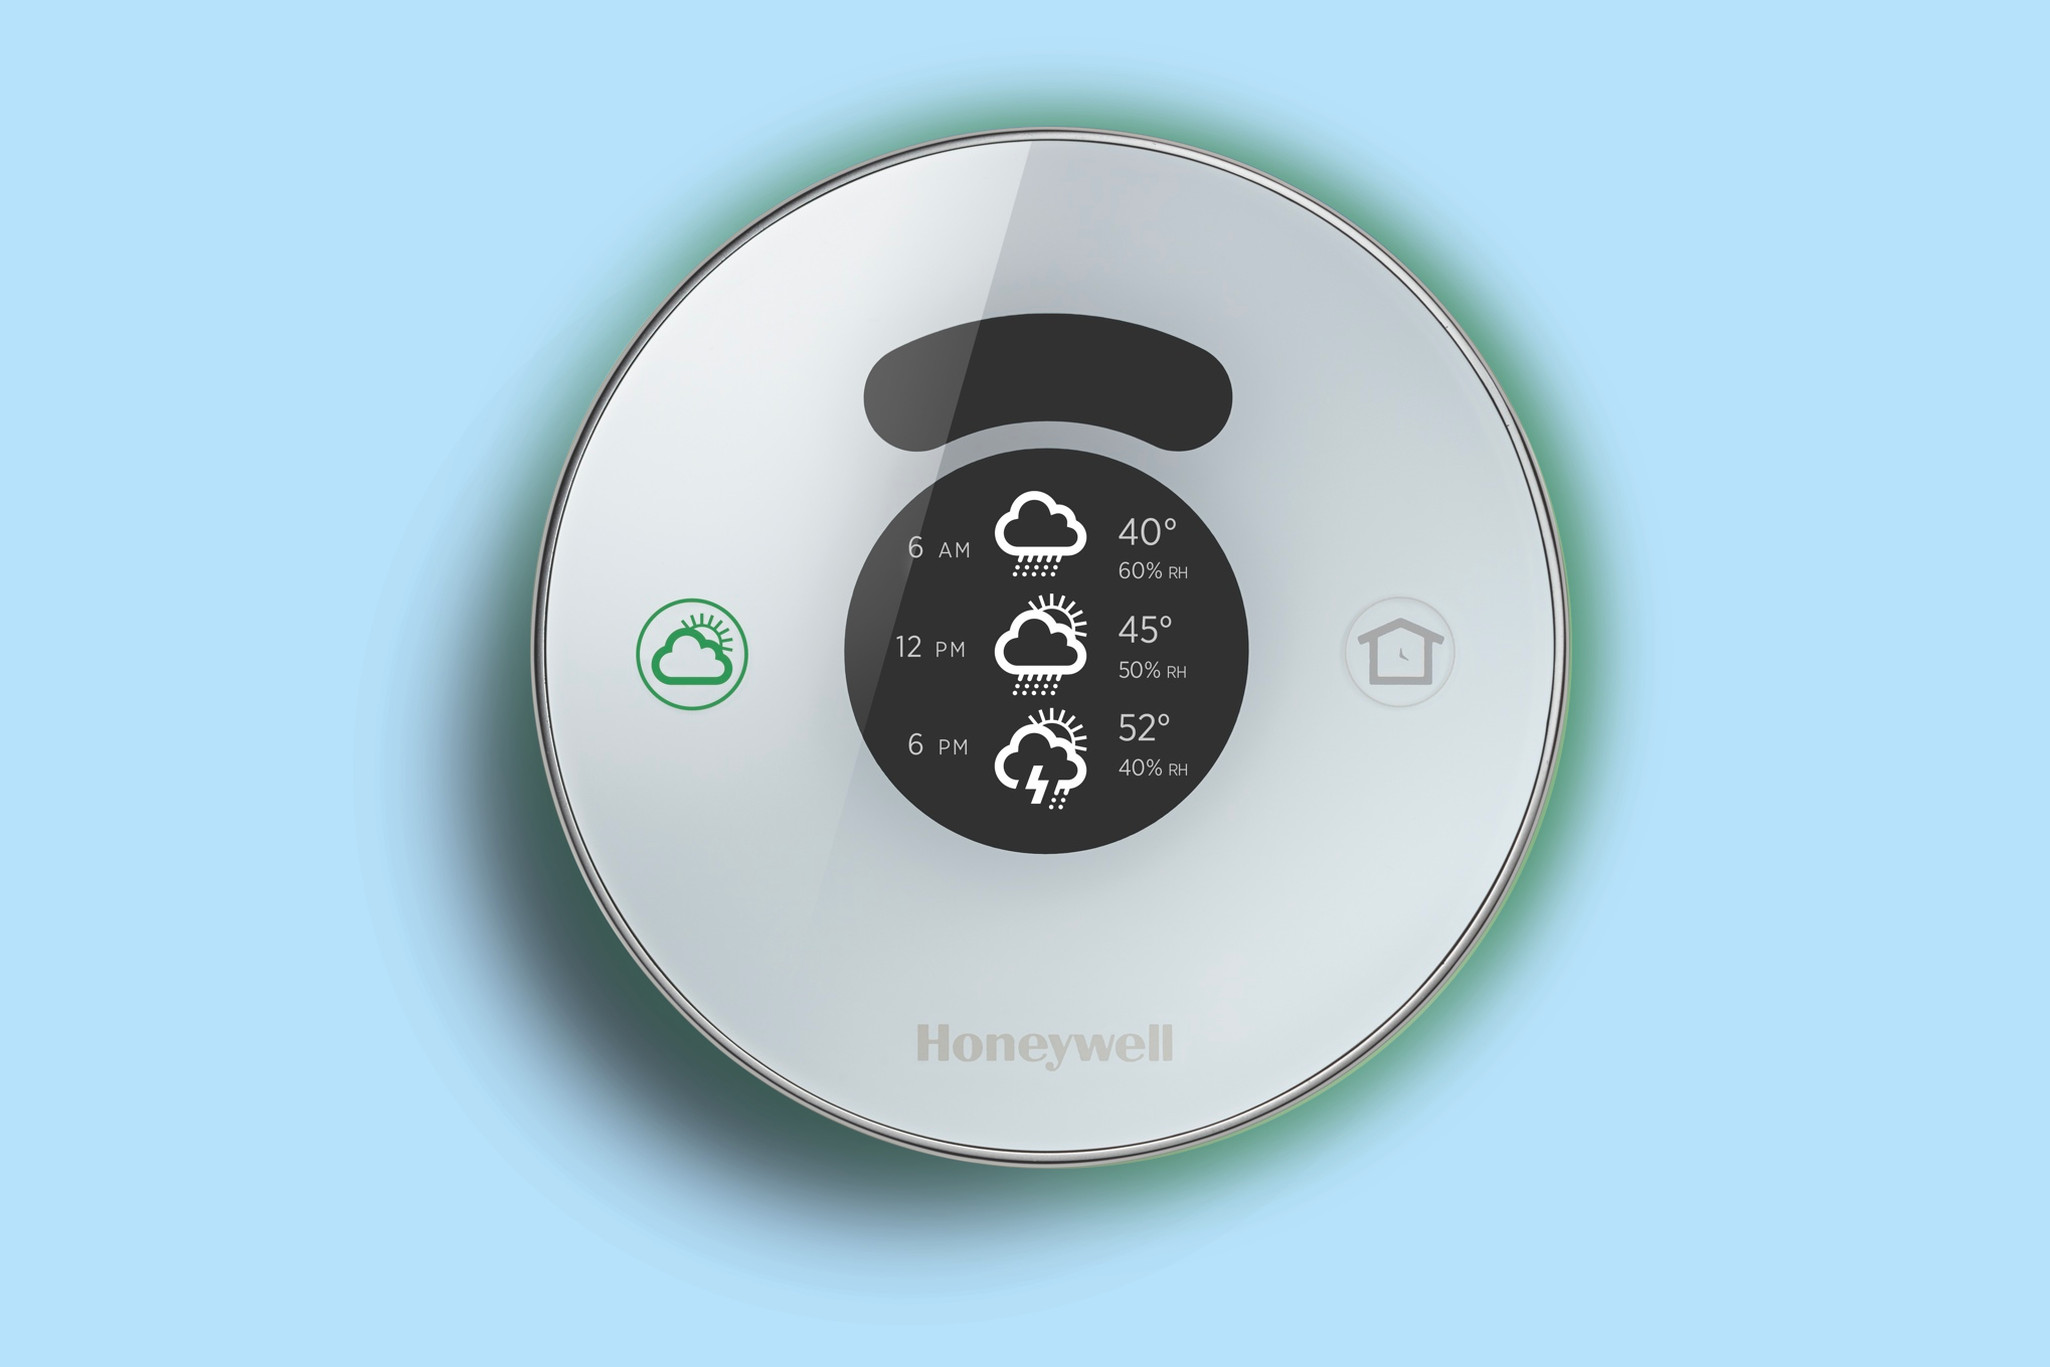 The heat is on: Honeywell is finally challenging the Nest